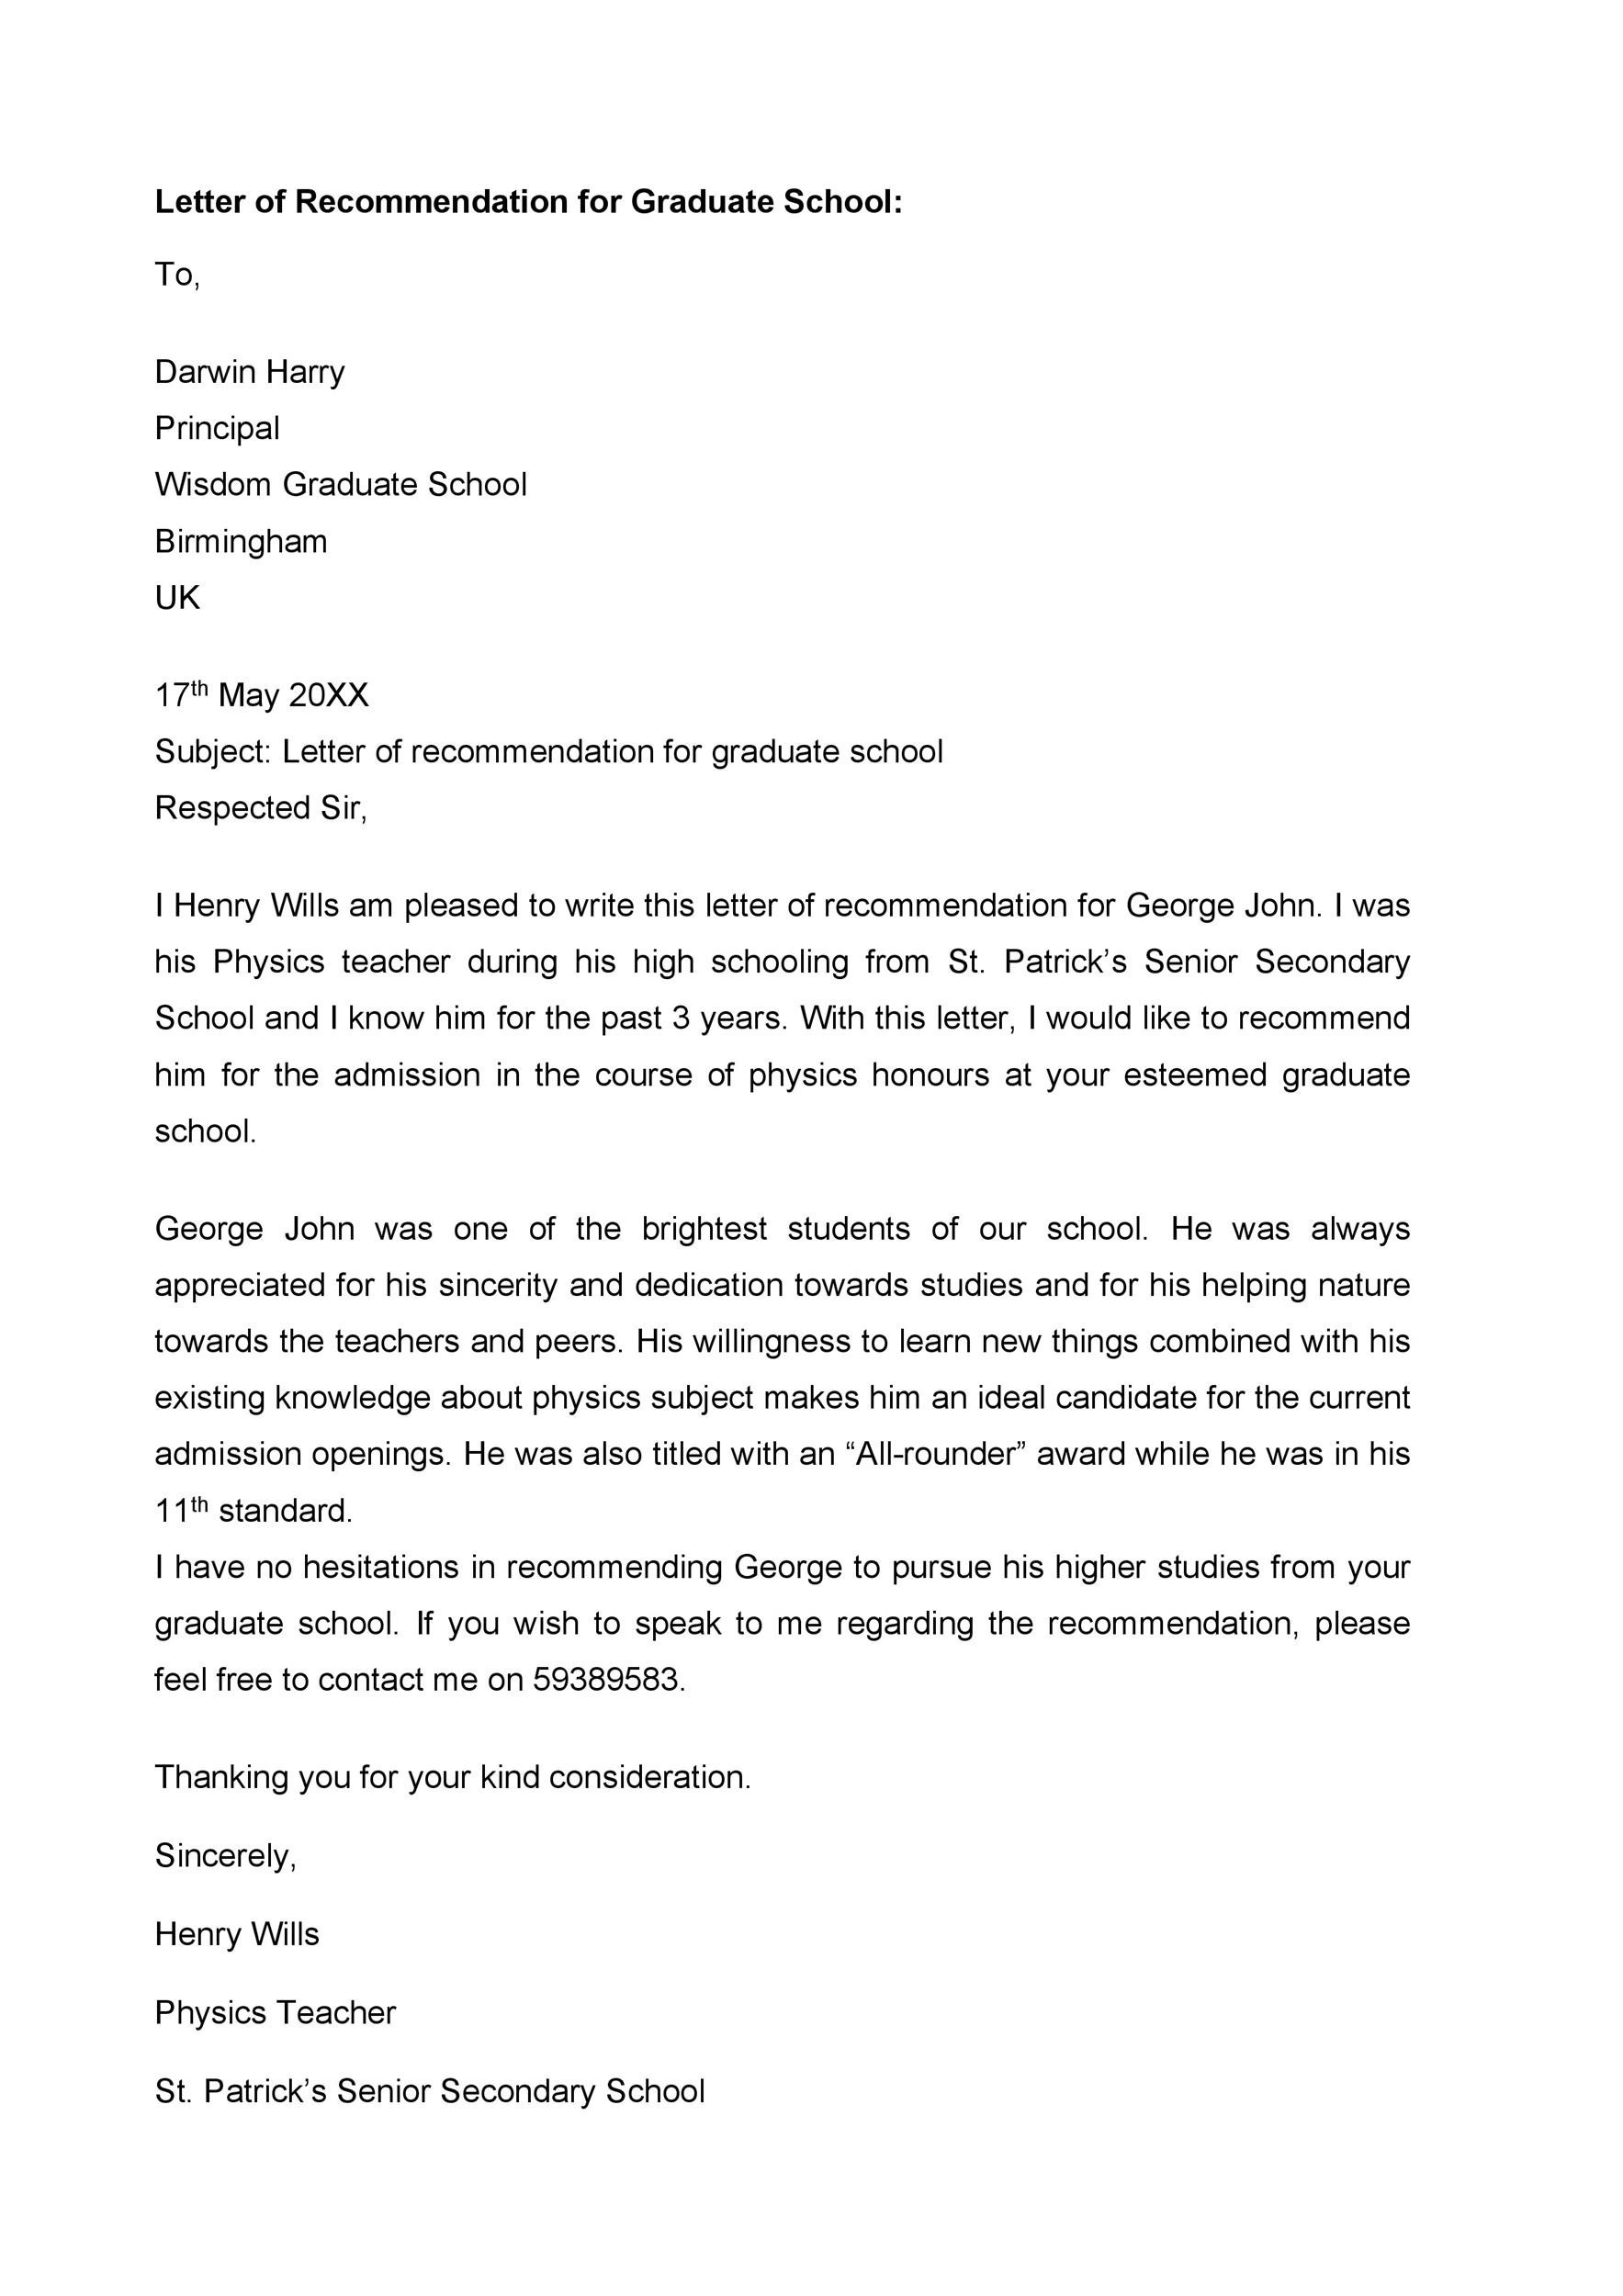 50 amazing recommendation letters for student from